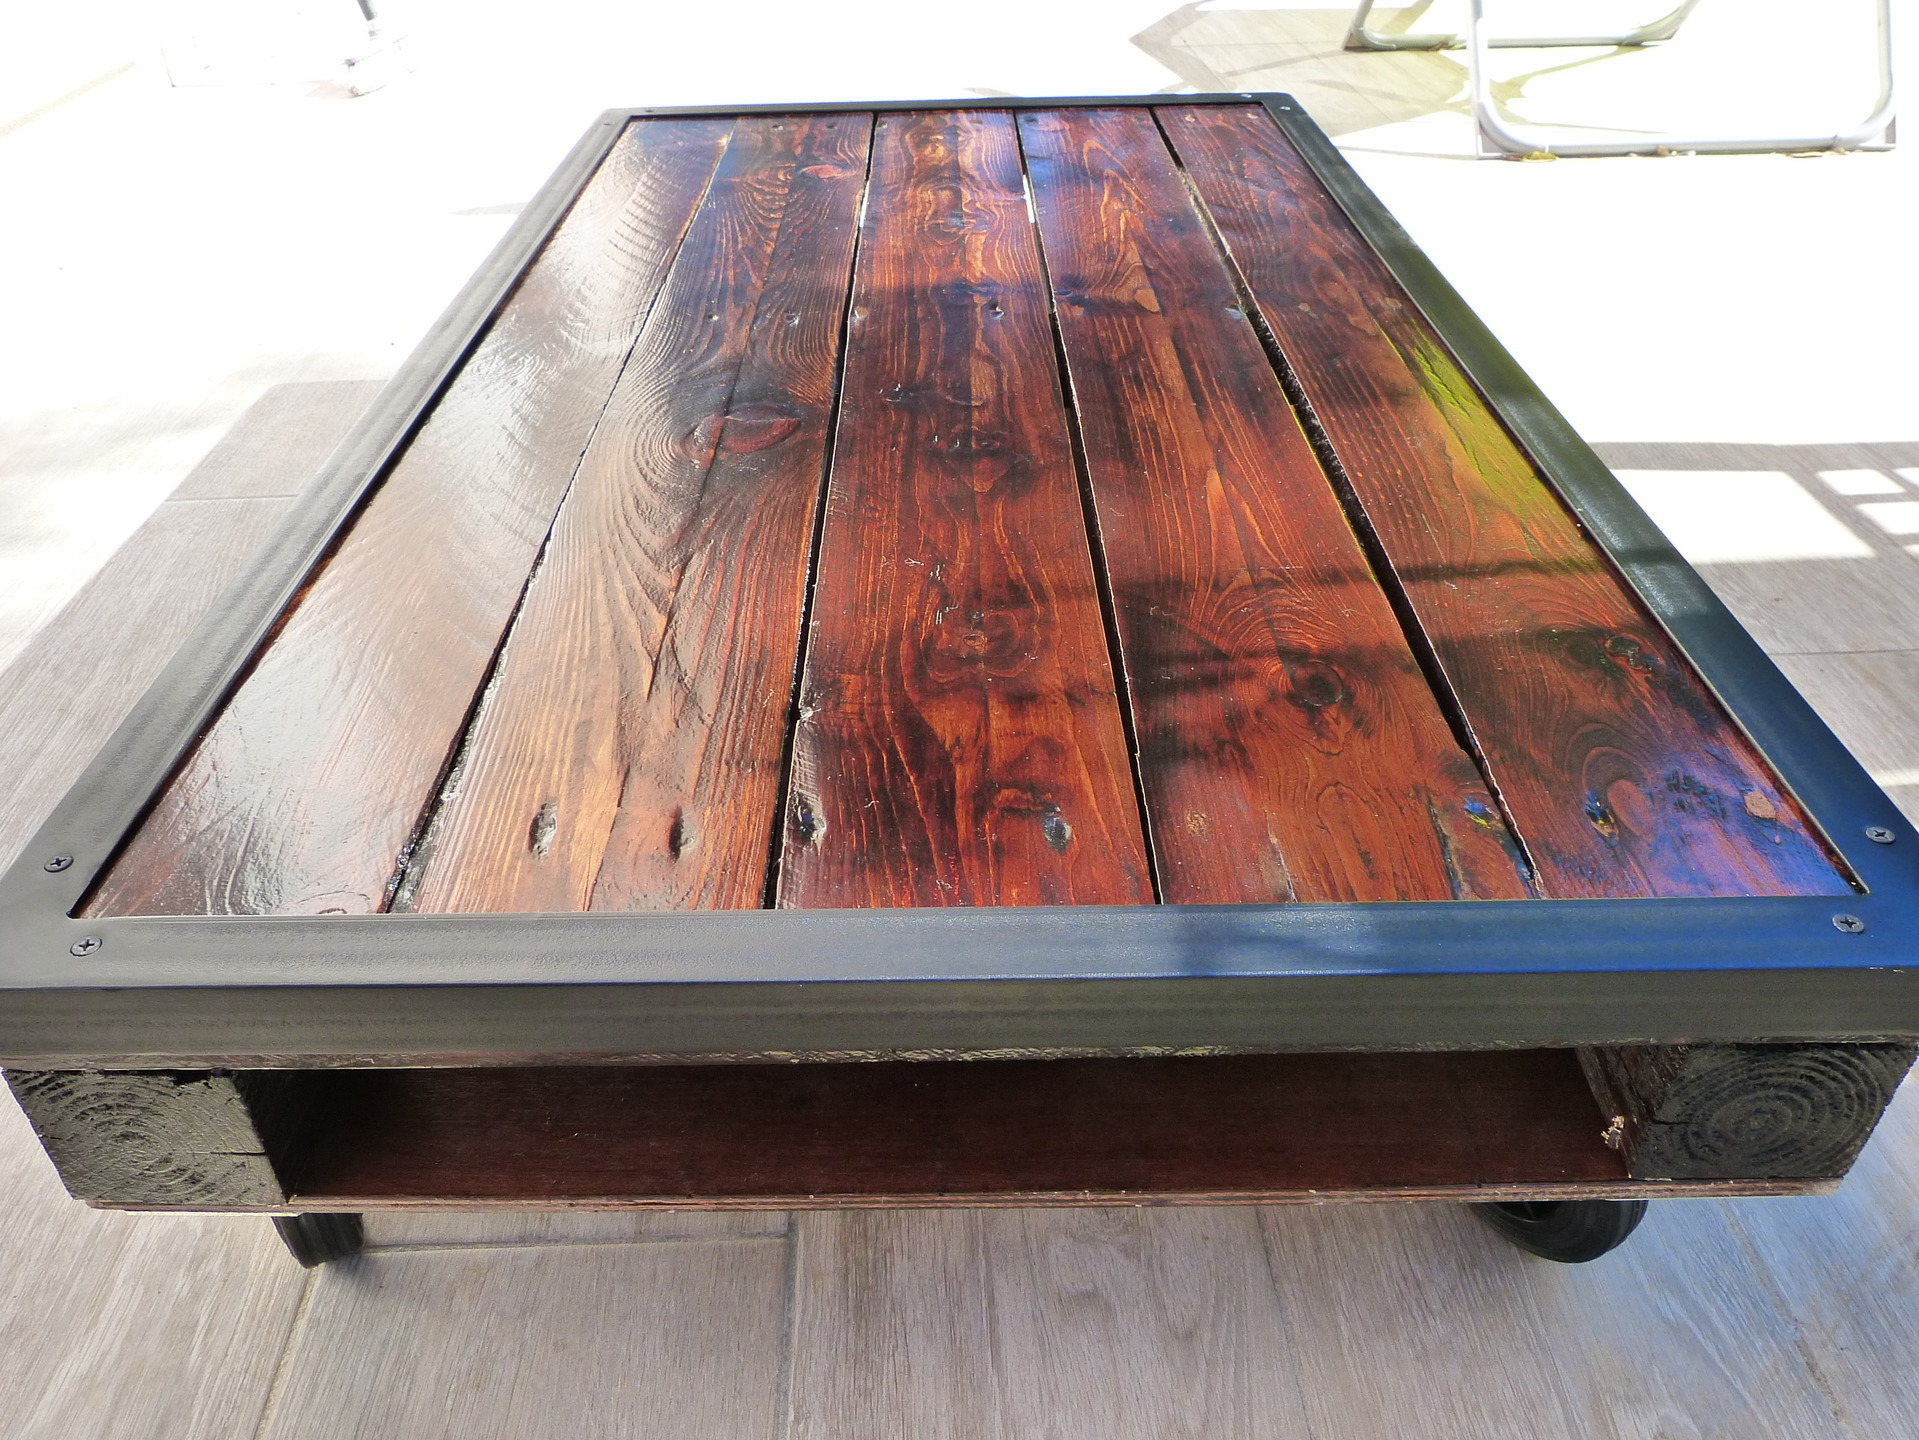 Faire une table basse en palette - Table en palette bois ...